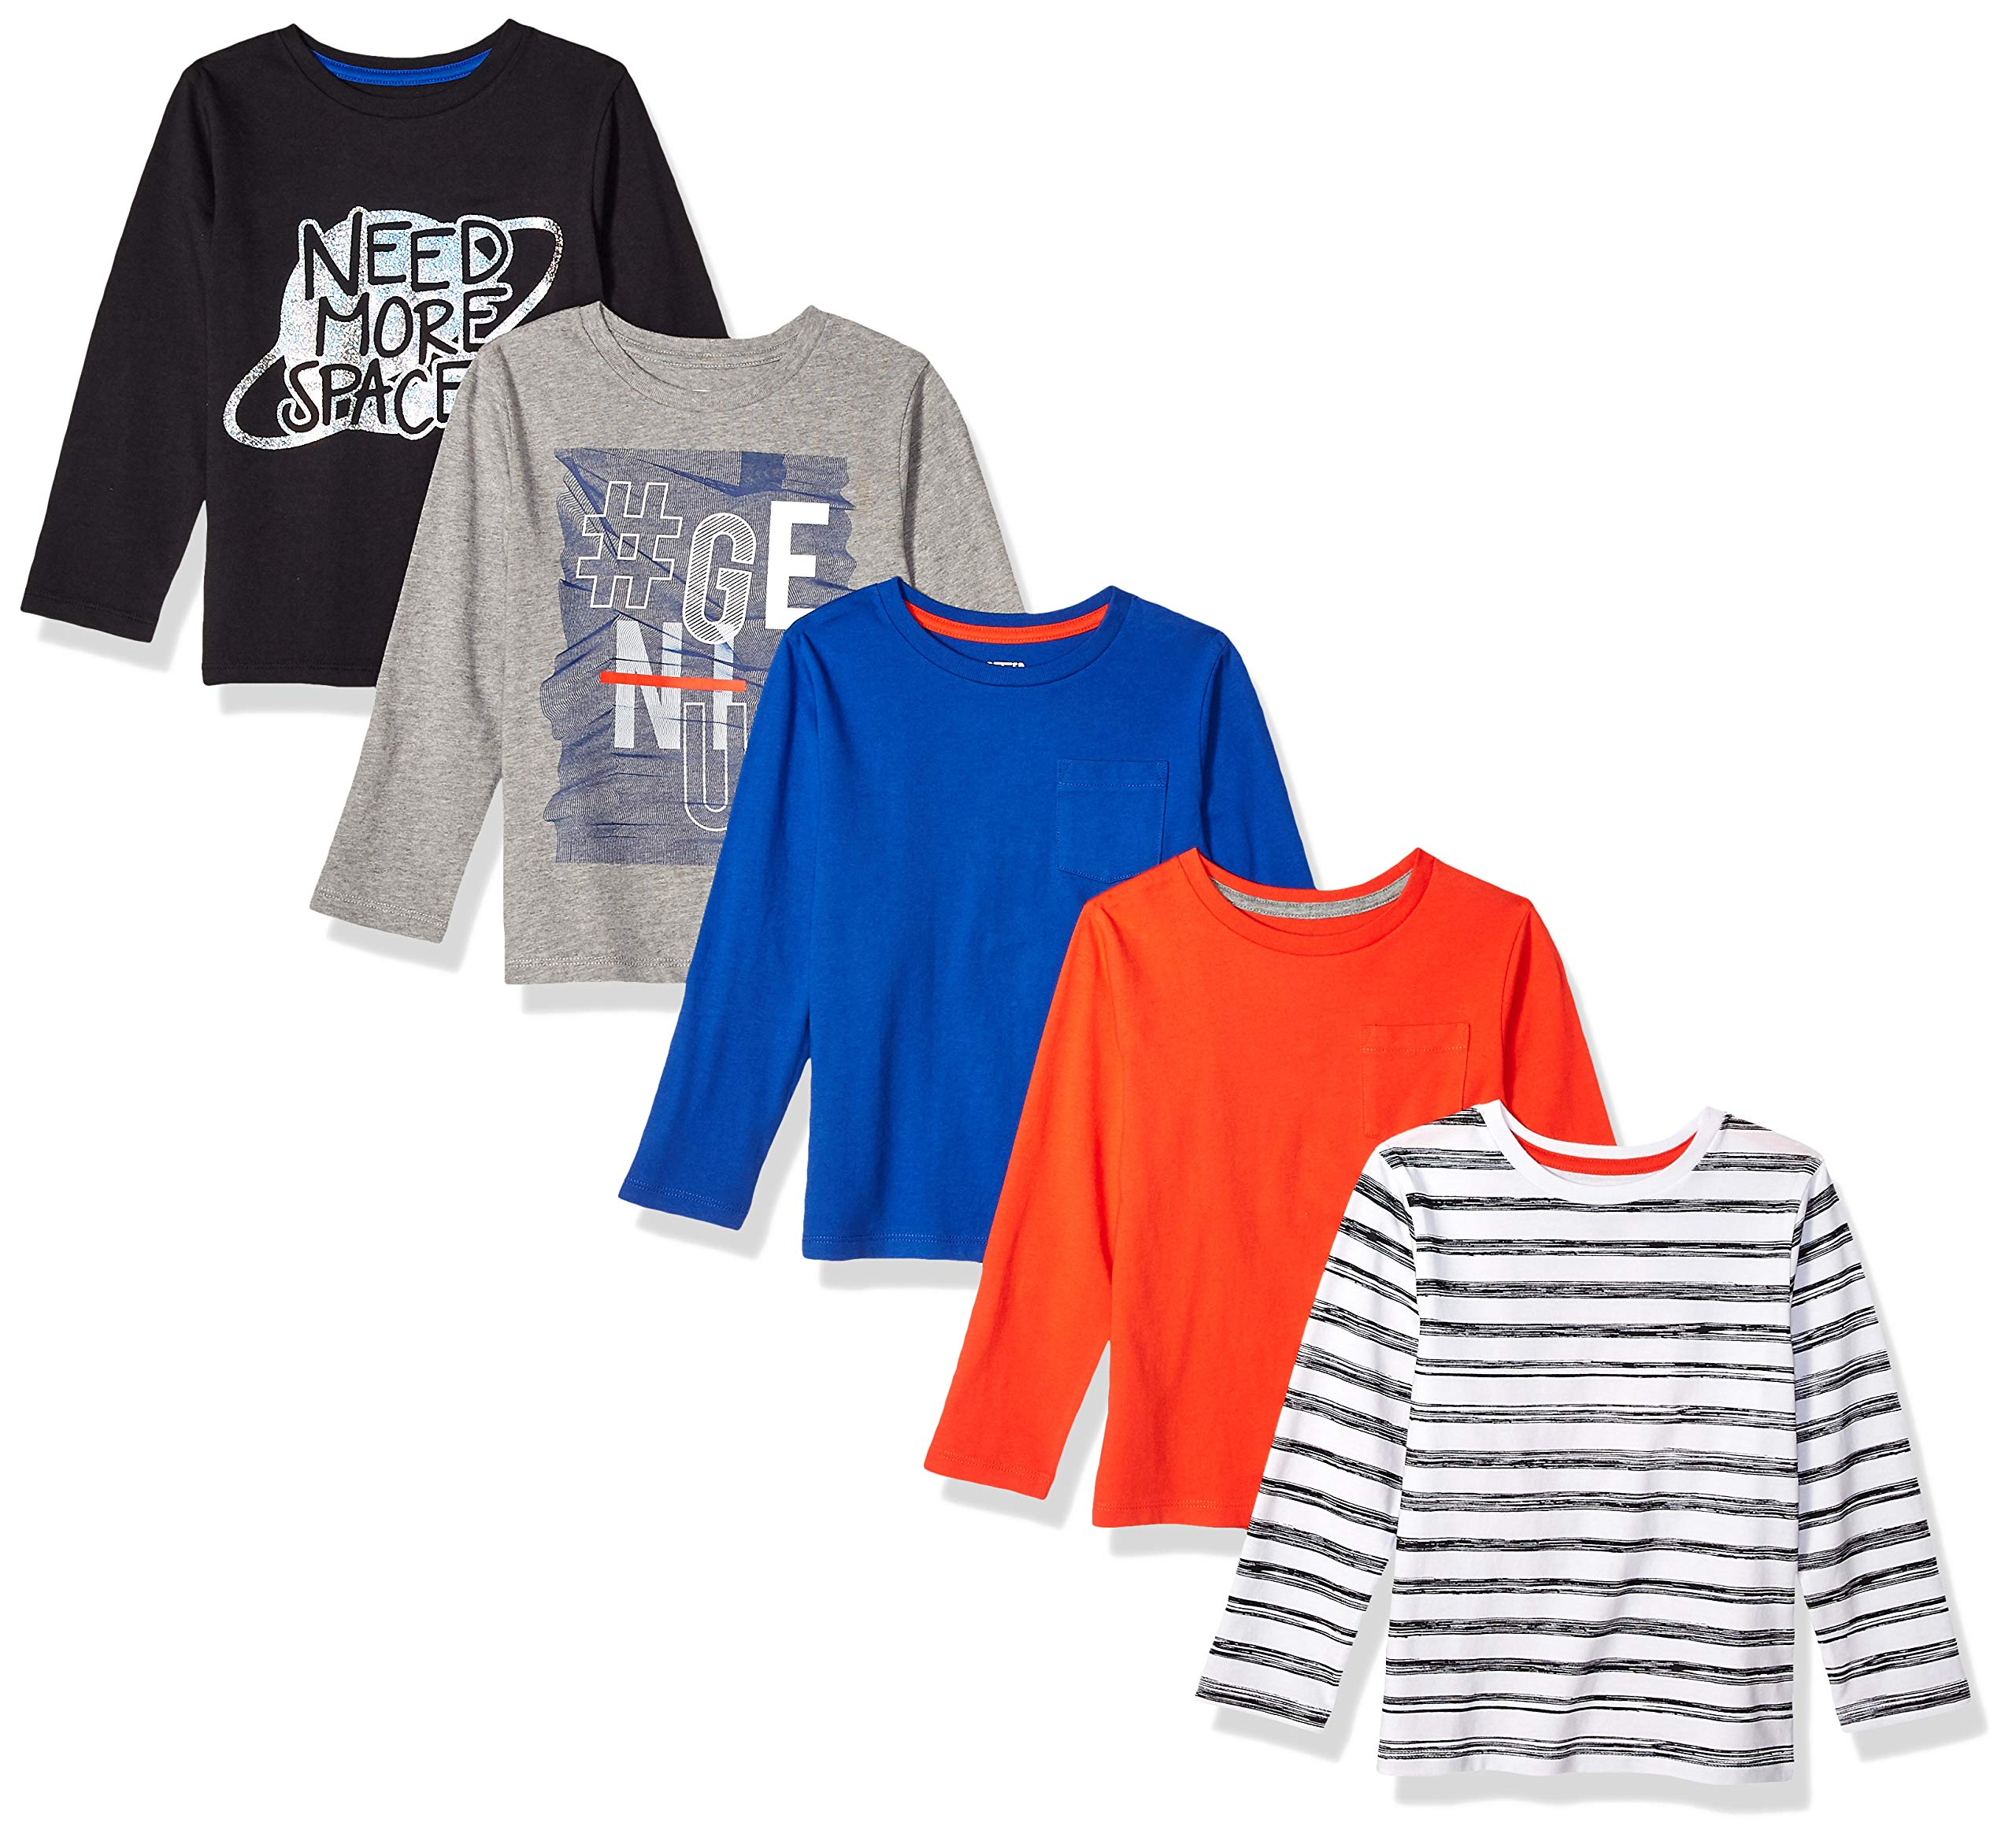 Spotted Zebra Boys' 5-Pack Long-Sleeve T-Shirts, Need Space, Small (6-7) by Spotted Zebra